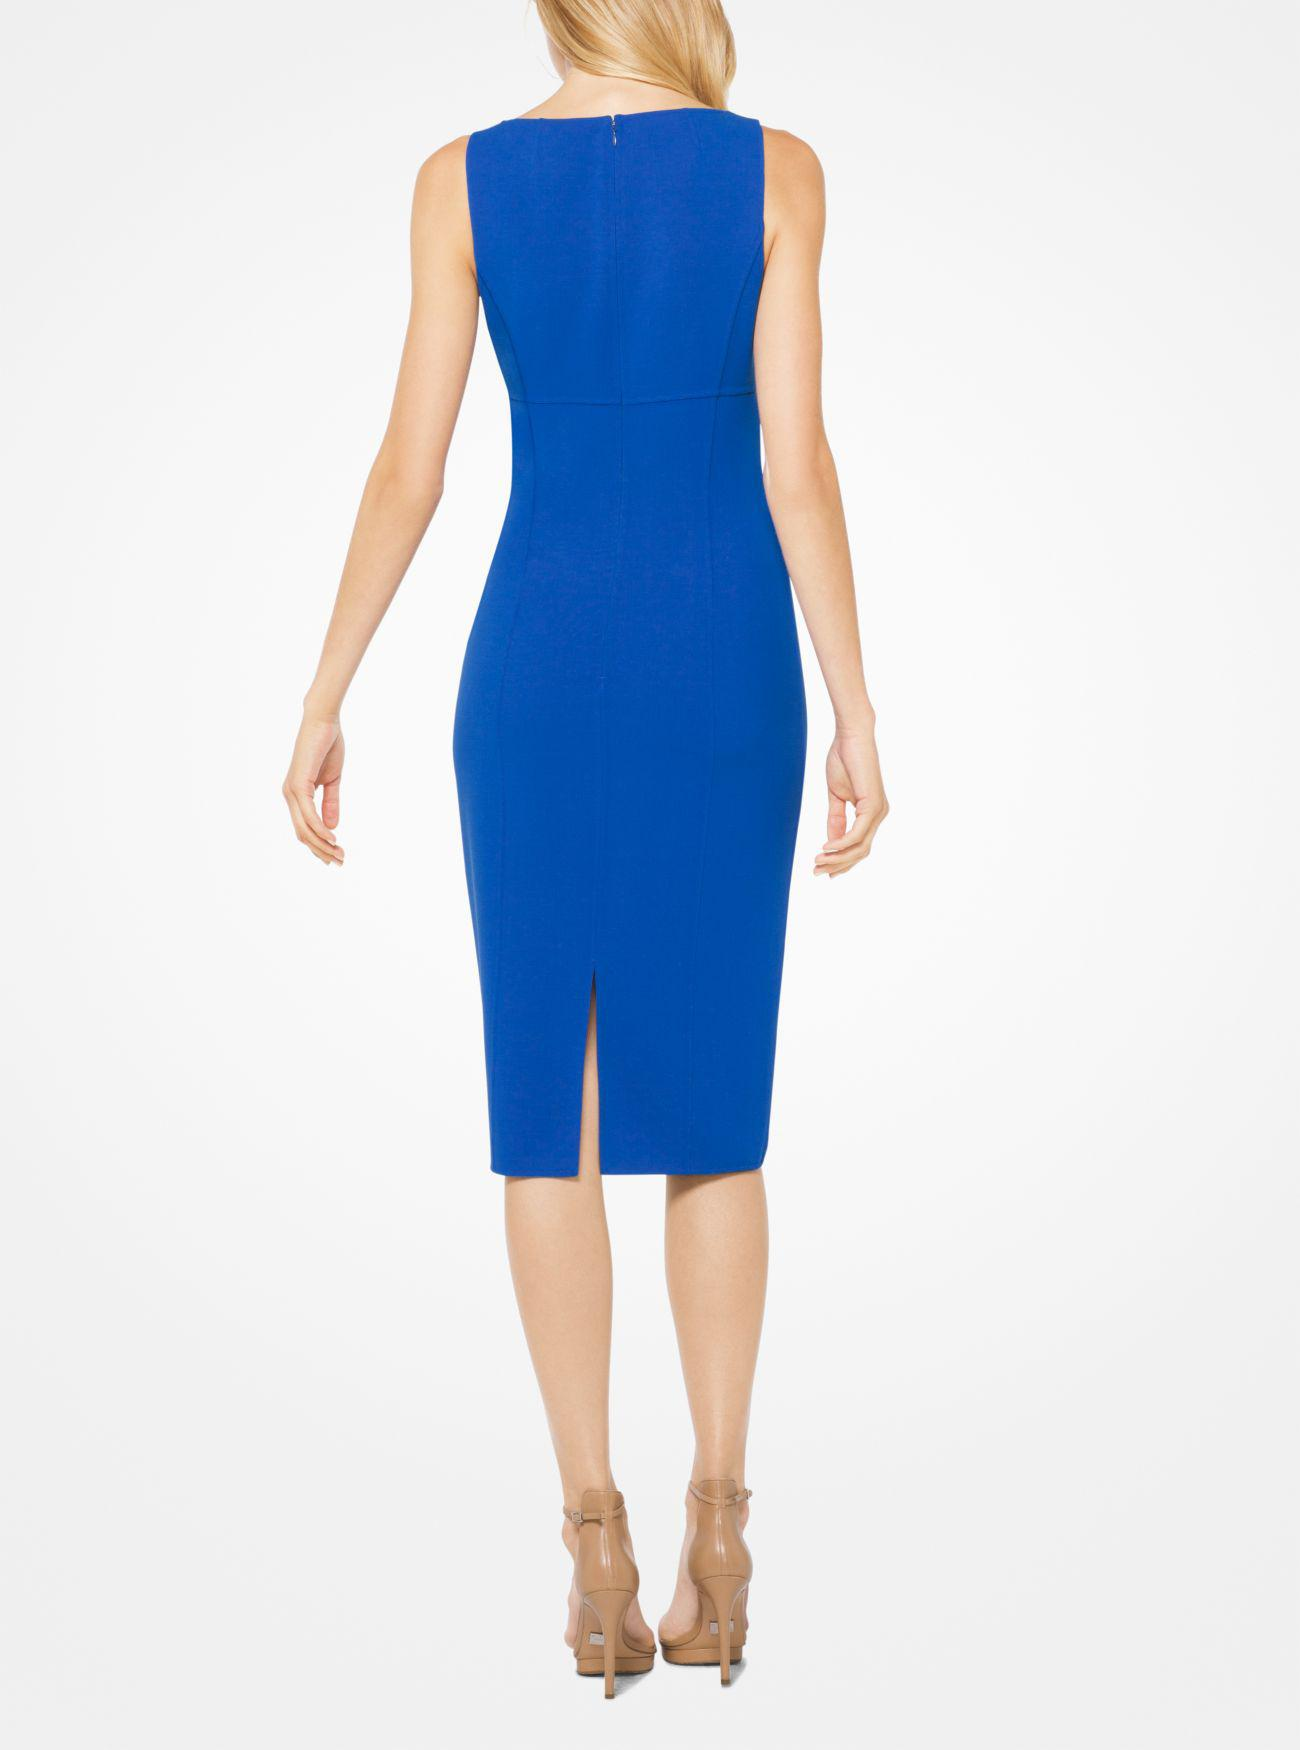 d1c07a522be00 Lyst - Michael Kors Stretch Wool-crepe Sheath Dress in Blue